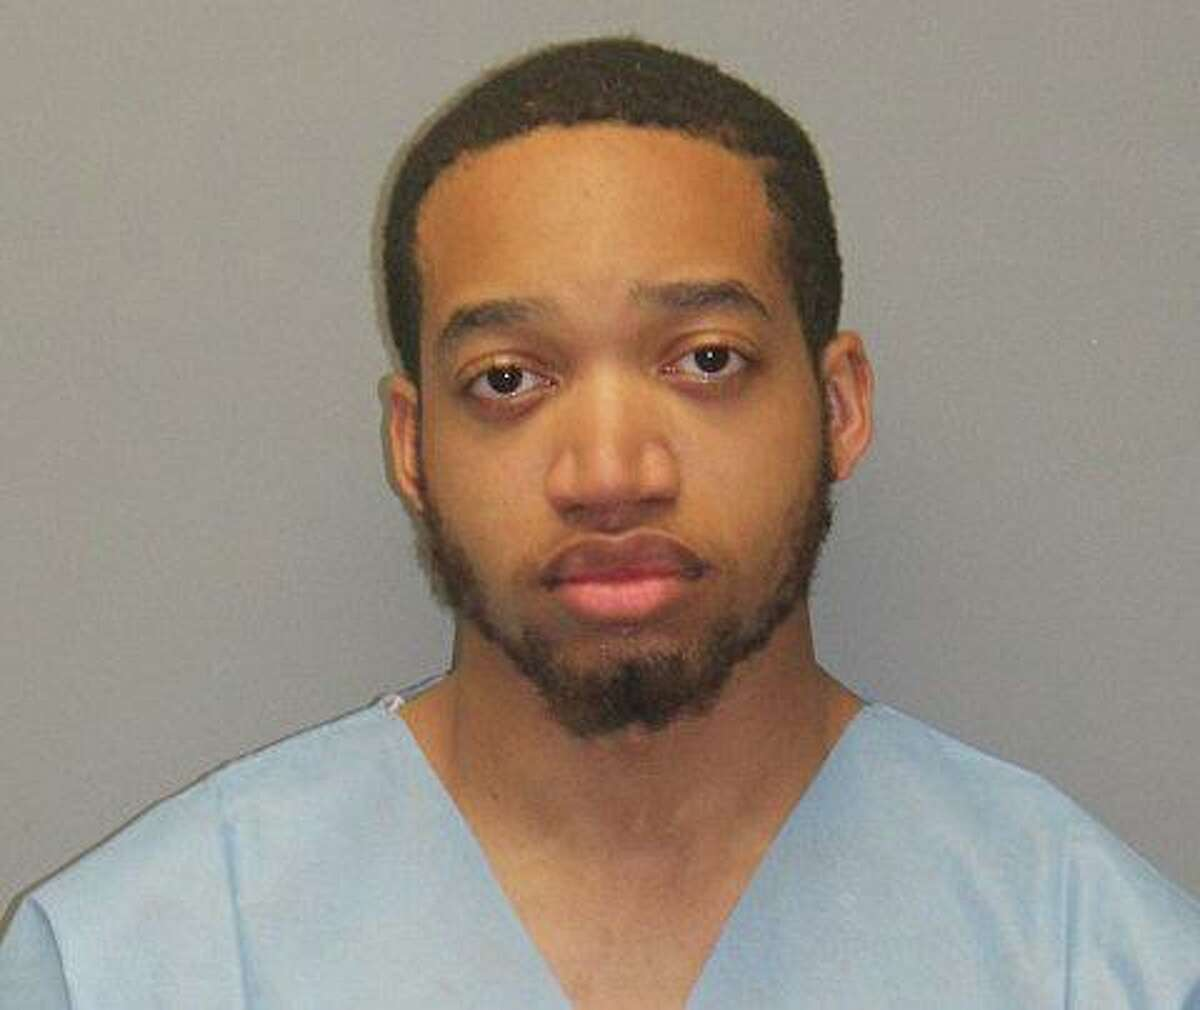 Tahj Hutchinson, 22, was charged with first-degree manslaughter.